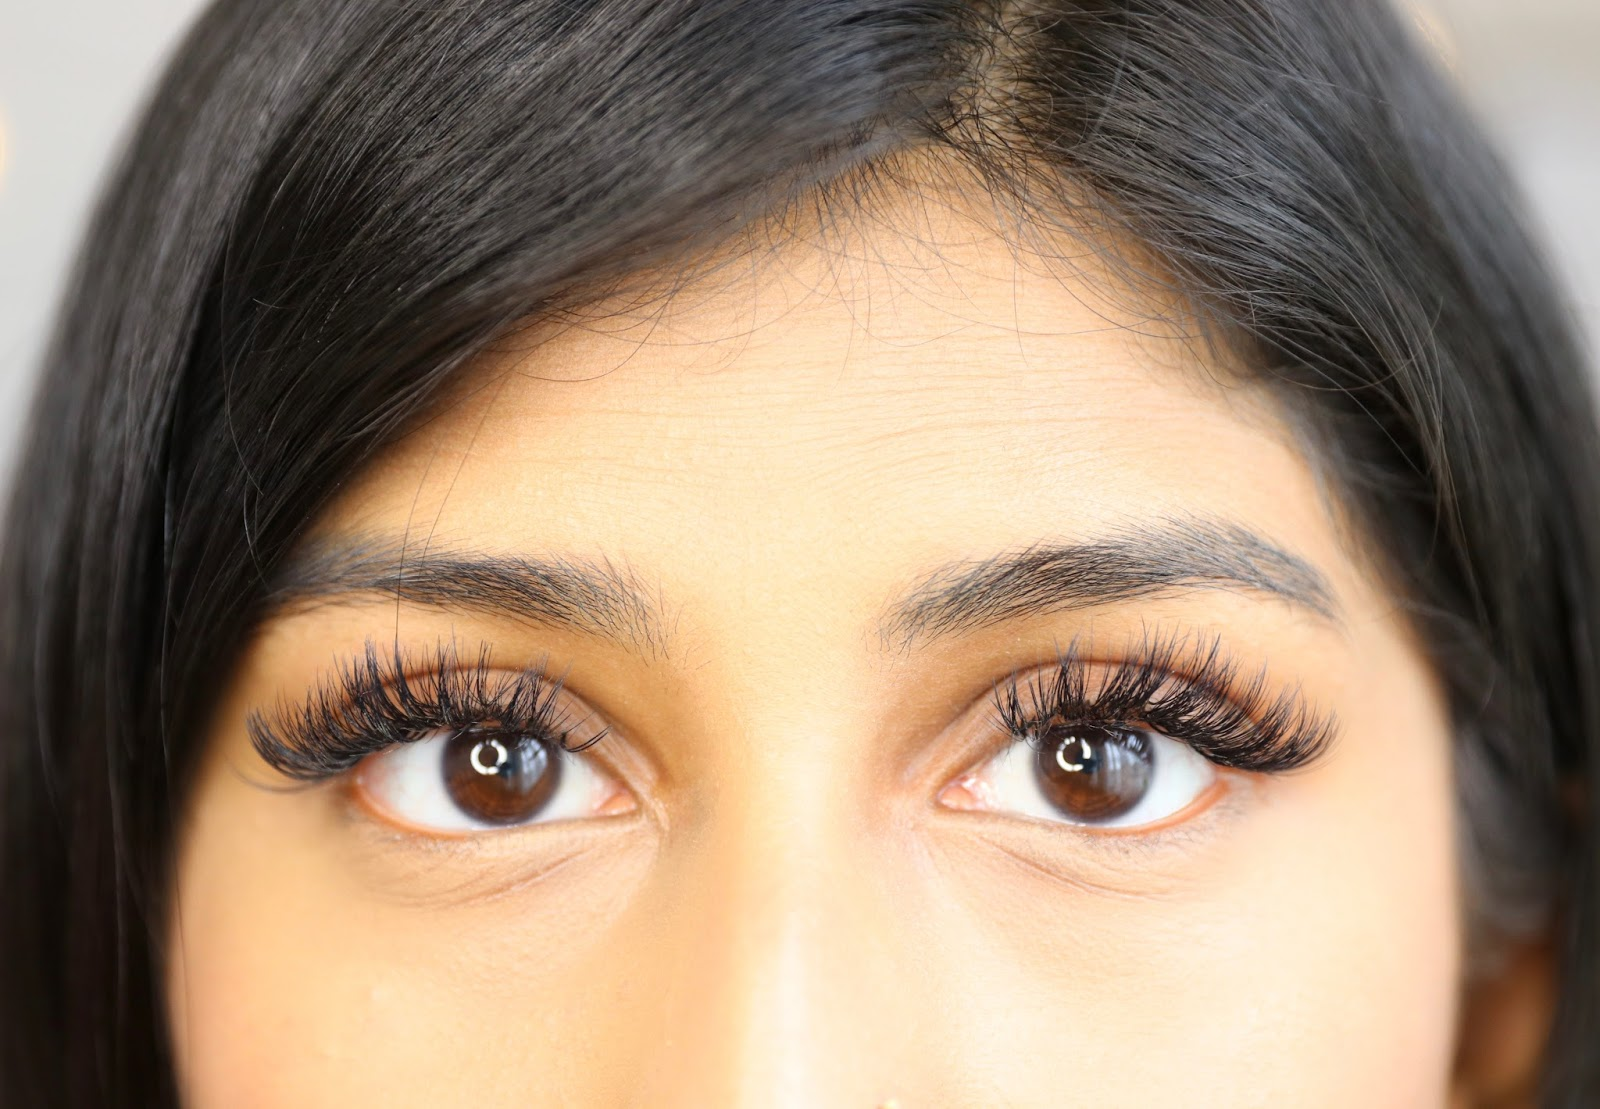 43f4c8fad5b Although they are more dramatic that I would usually go for, I got my SVS  treatment done in time for Eid so went for really glamorous lashes for the  ...